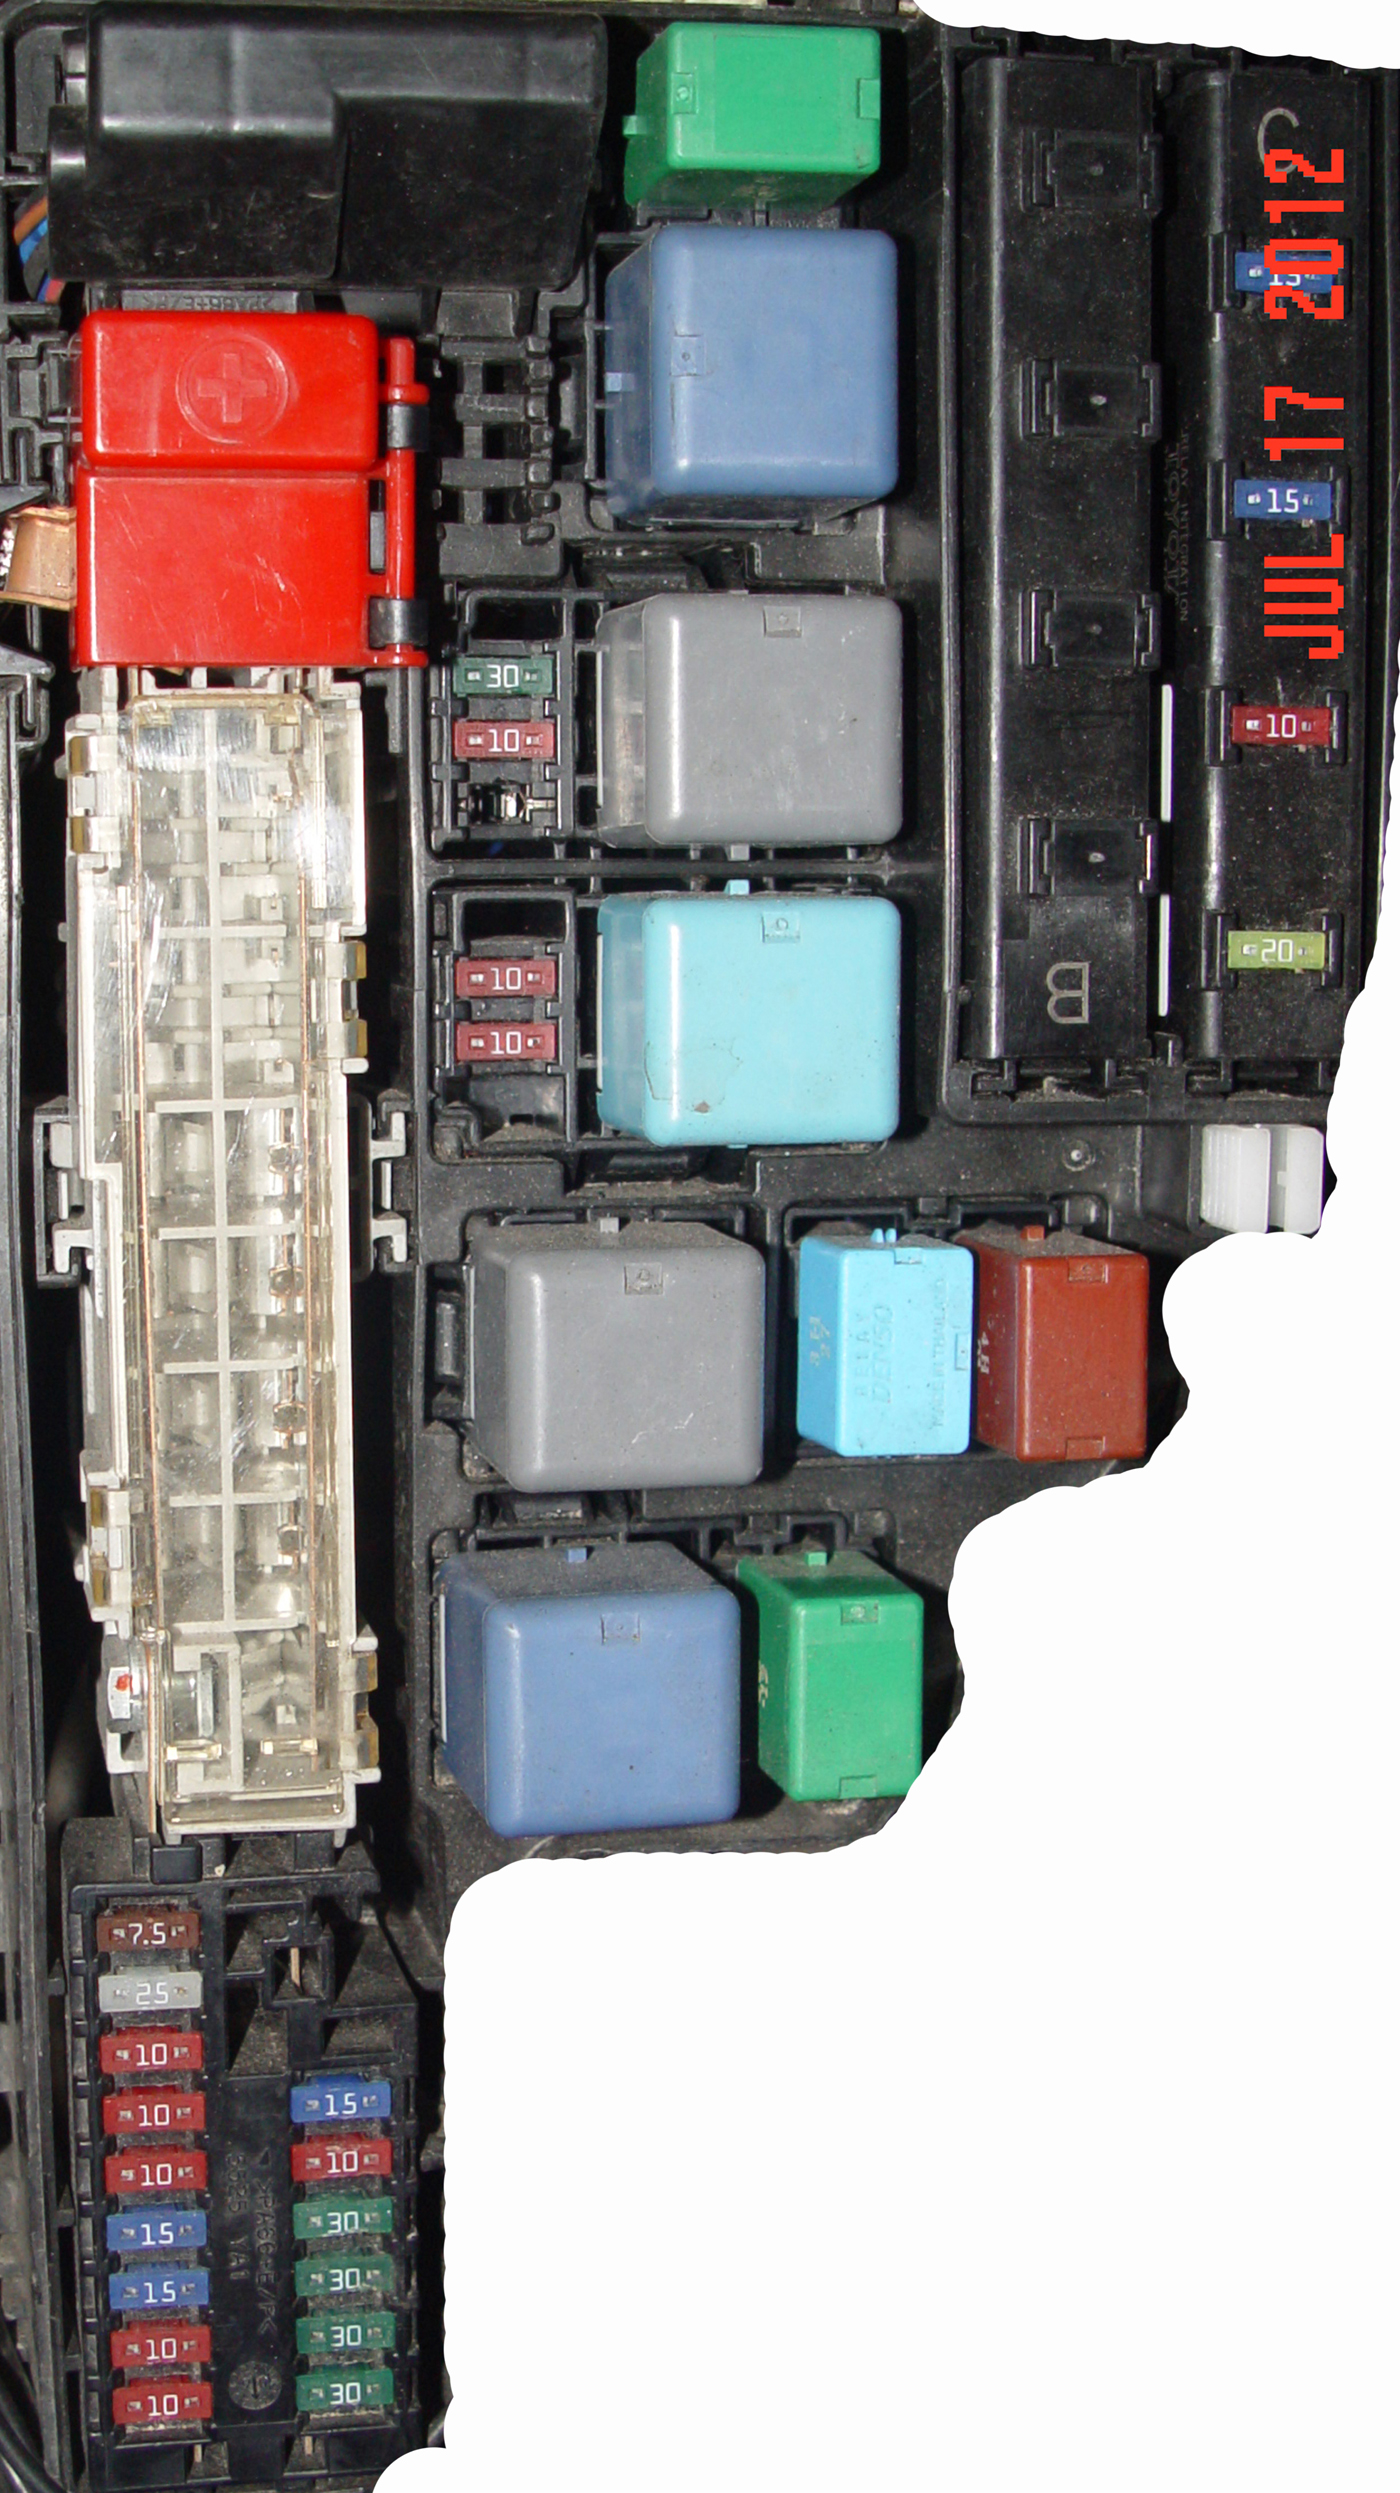 2004 toyota prius fuse box diagram iirGtIL 2008 toyota prius fuse box 2007 toyota prius fuse box \u2022 free 2010 toyota prius fuse box cover at panicattacktreatment.co